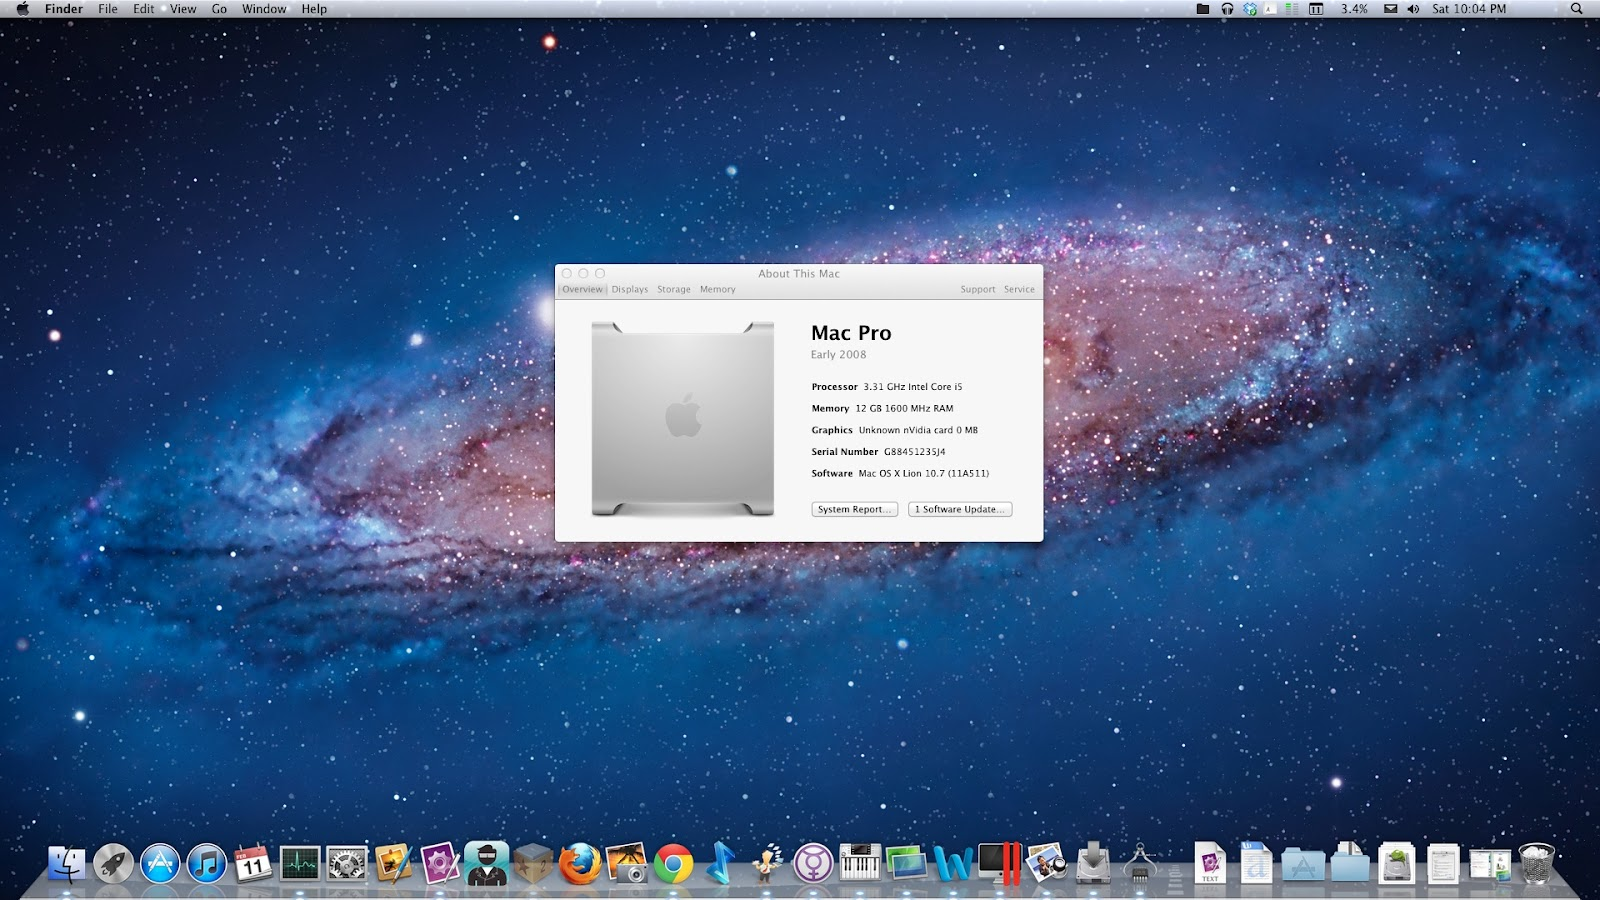 hacked mac os disc image file windows download hackintosh